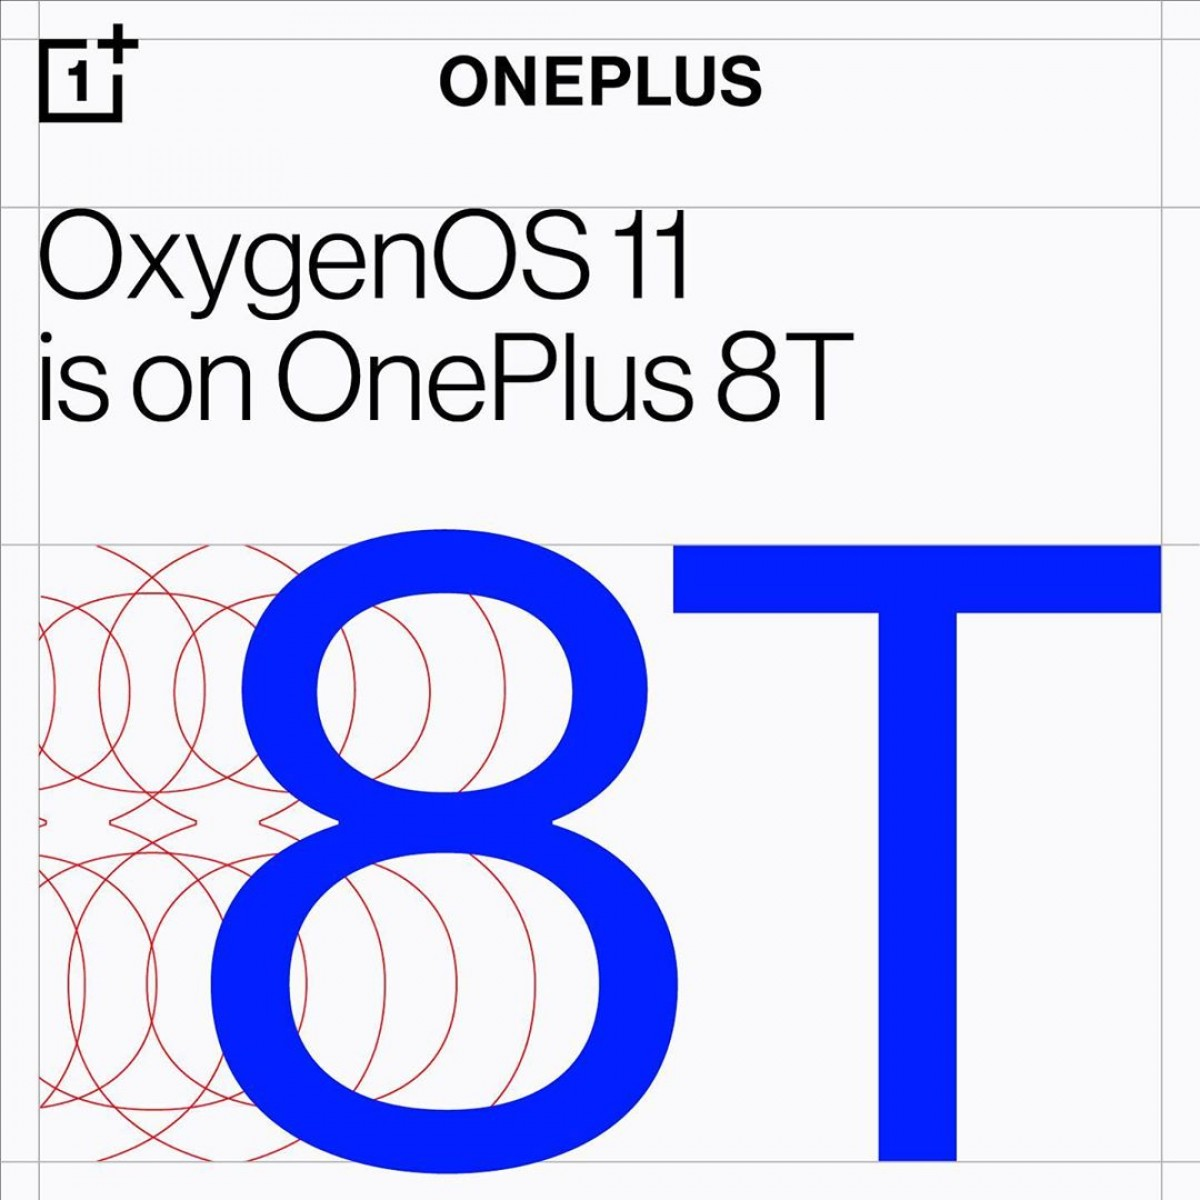 OnePlus 8T will come with OxygenOS 11 pre-loaded